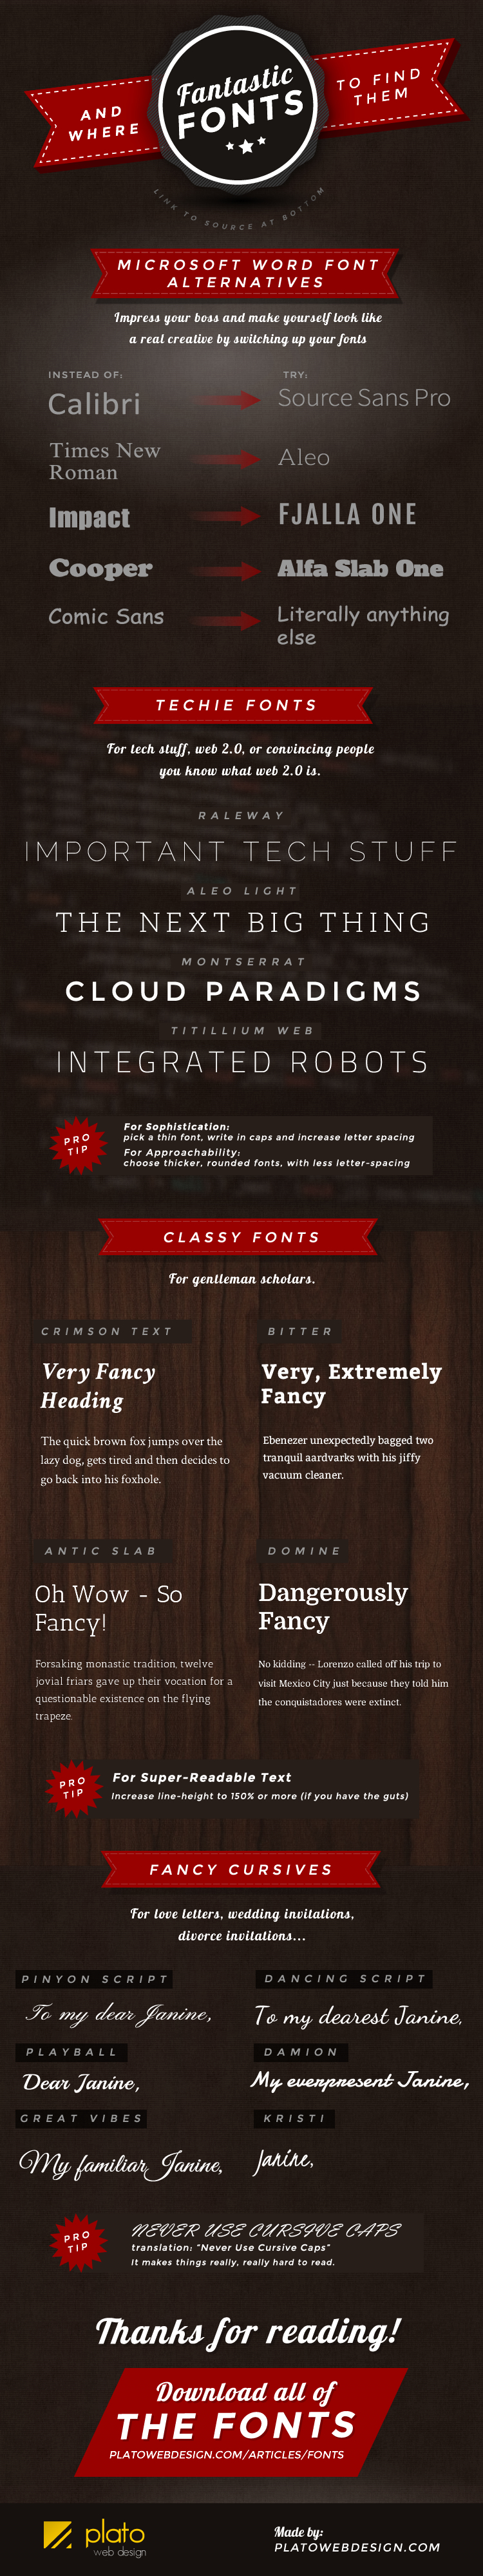 Best Free Fonts Resume Font The Muse